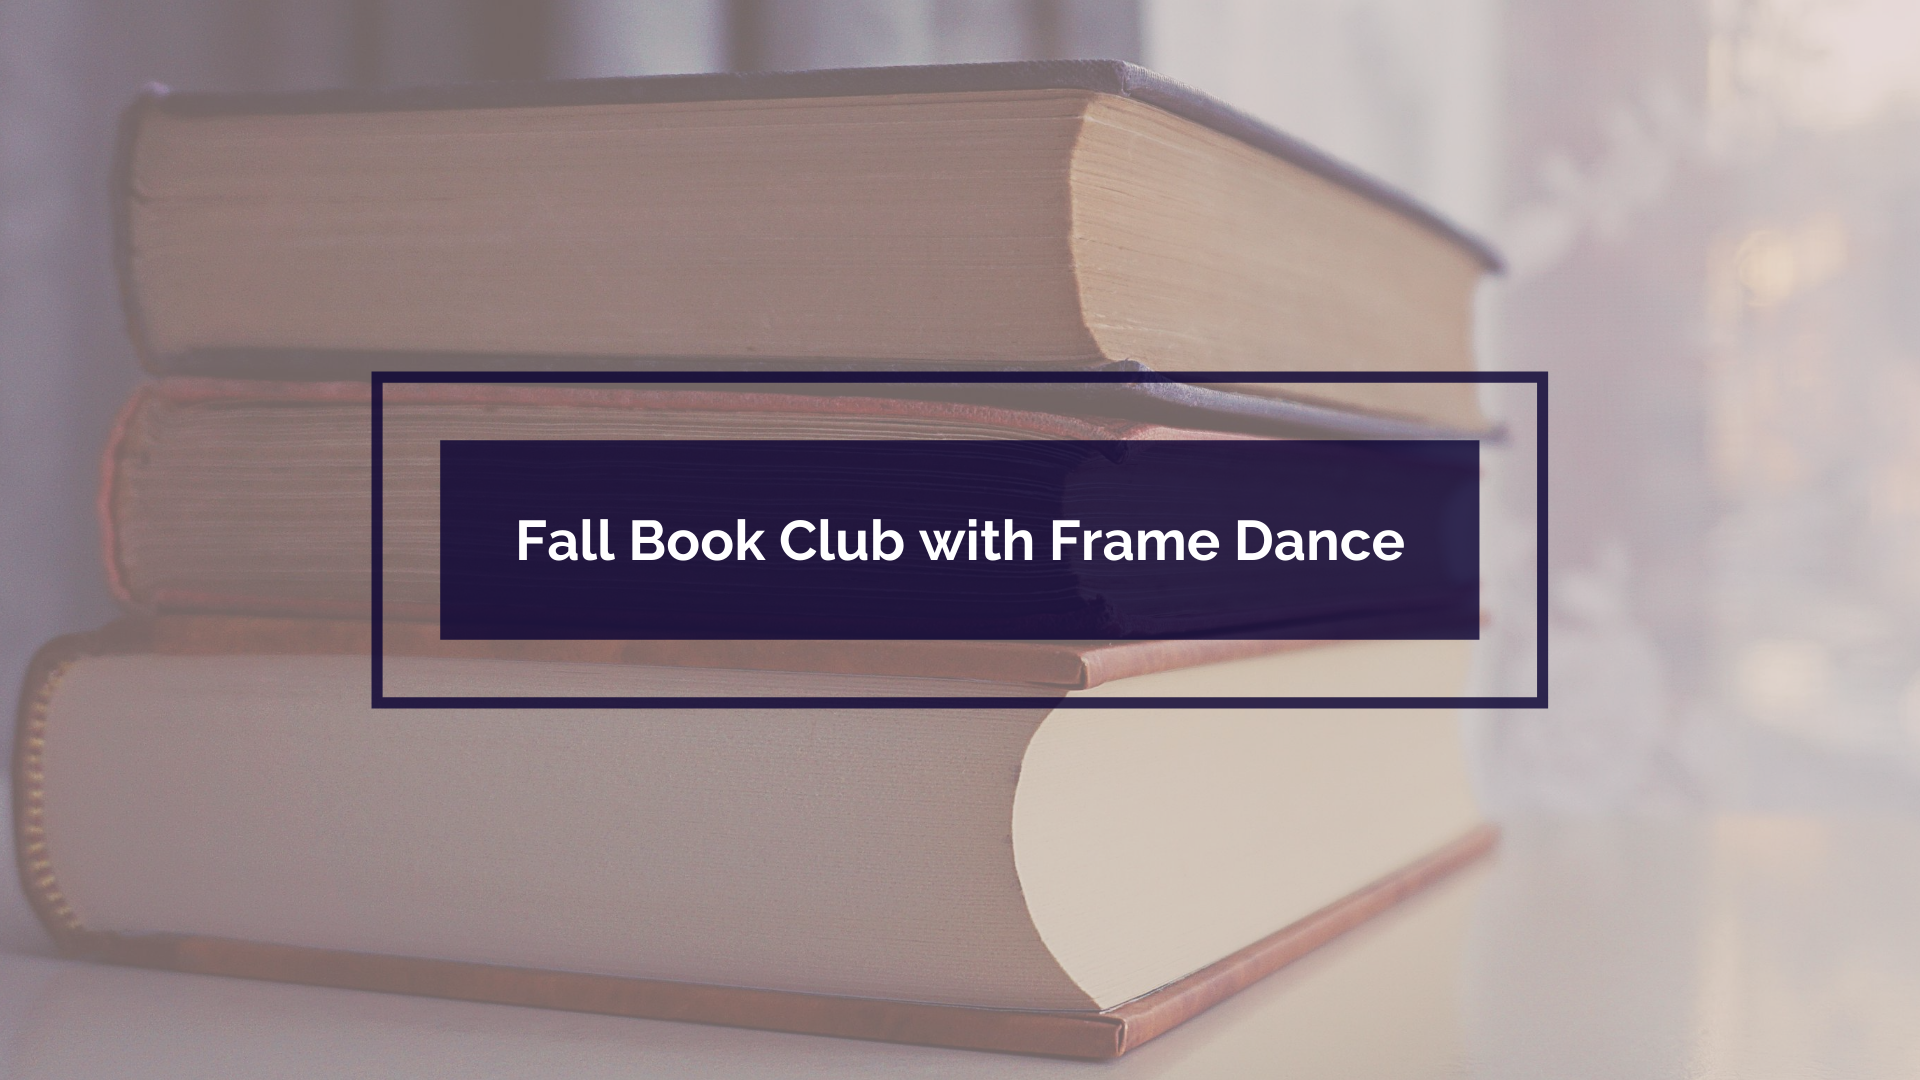 Fall Book Club